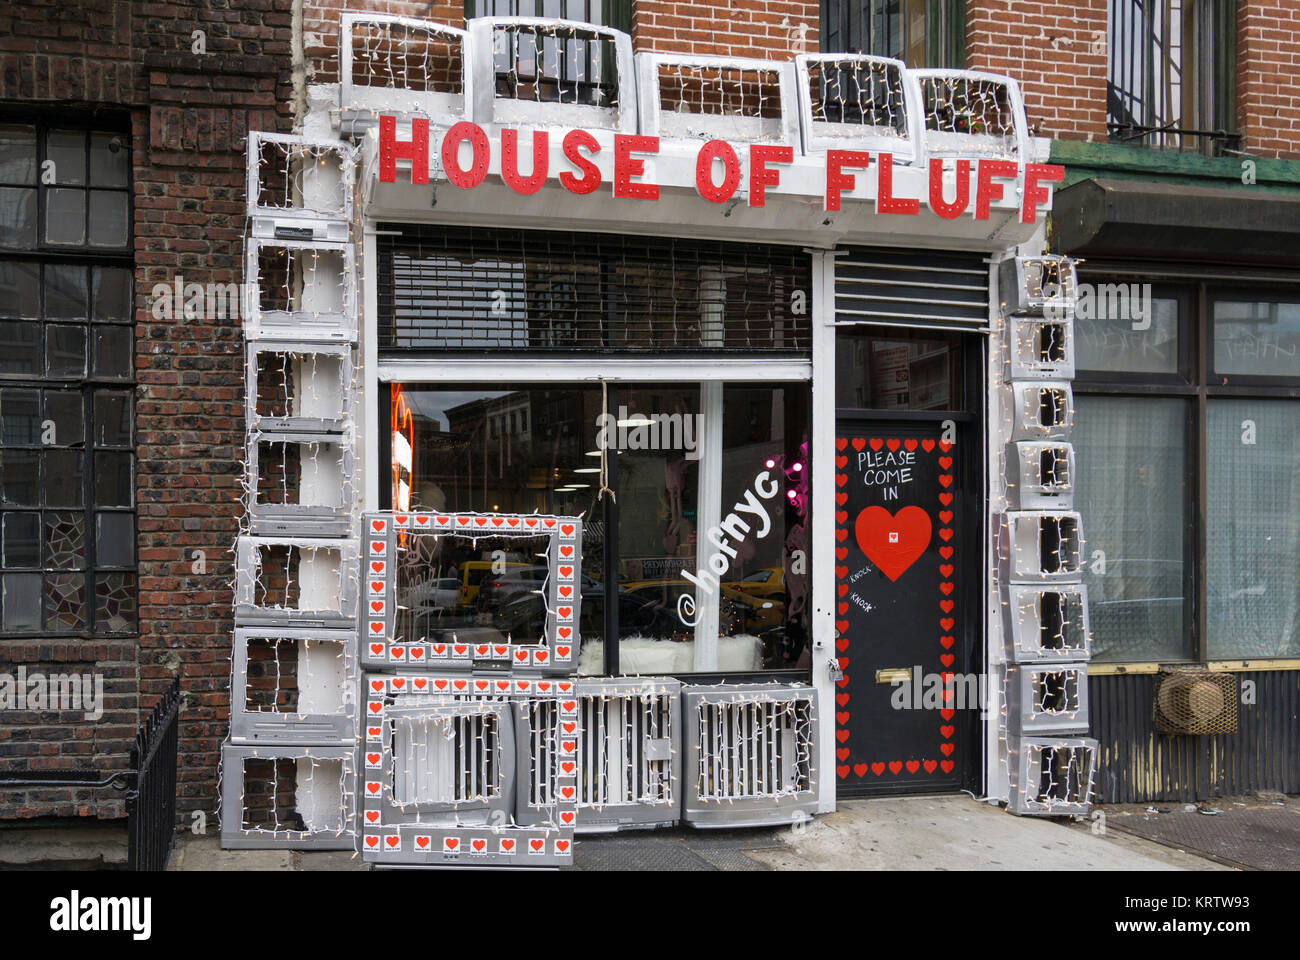 House of Fluff on the Bowery in New York City - Stock Image